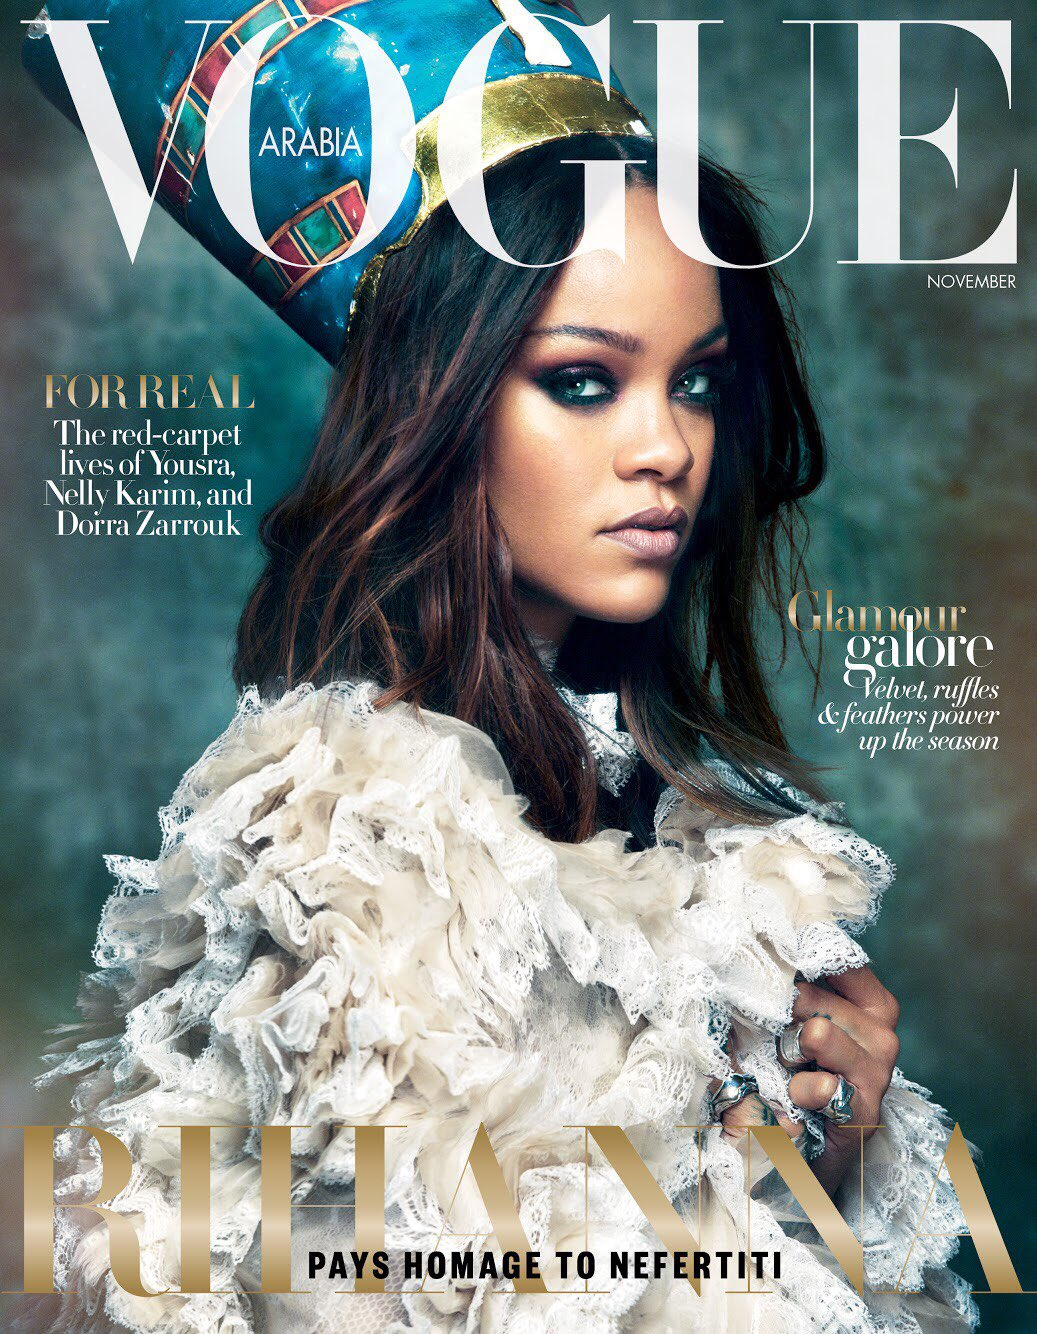 Cover of @VOGUEARABIA on stands Nov. 1st!! https://t.co/olYxk5Dv2E